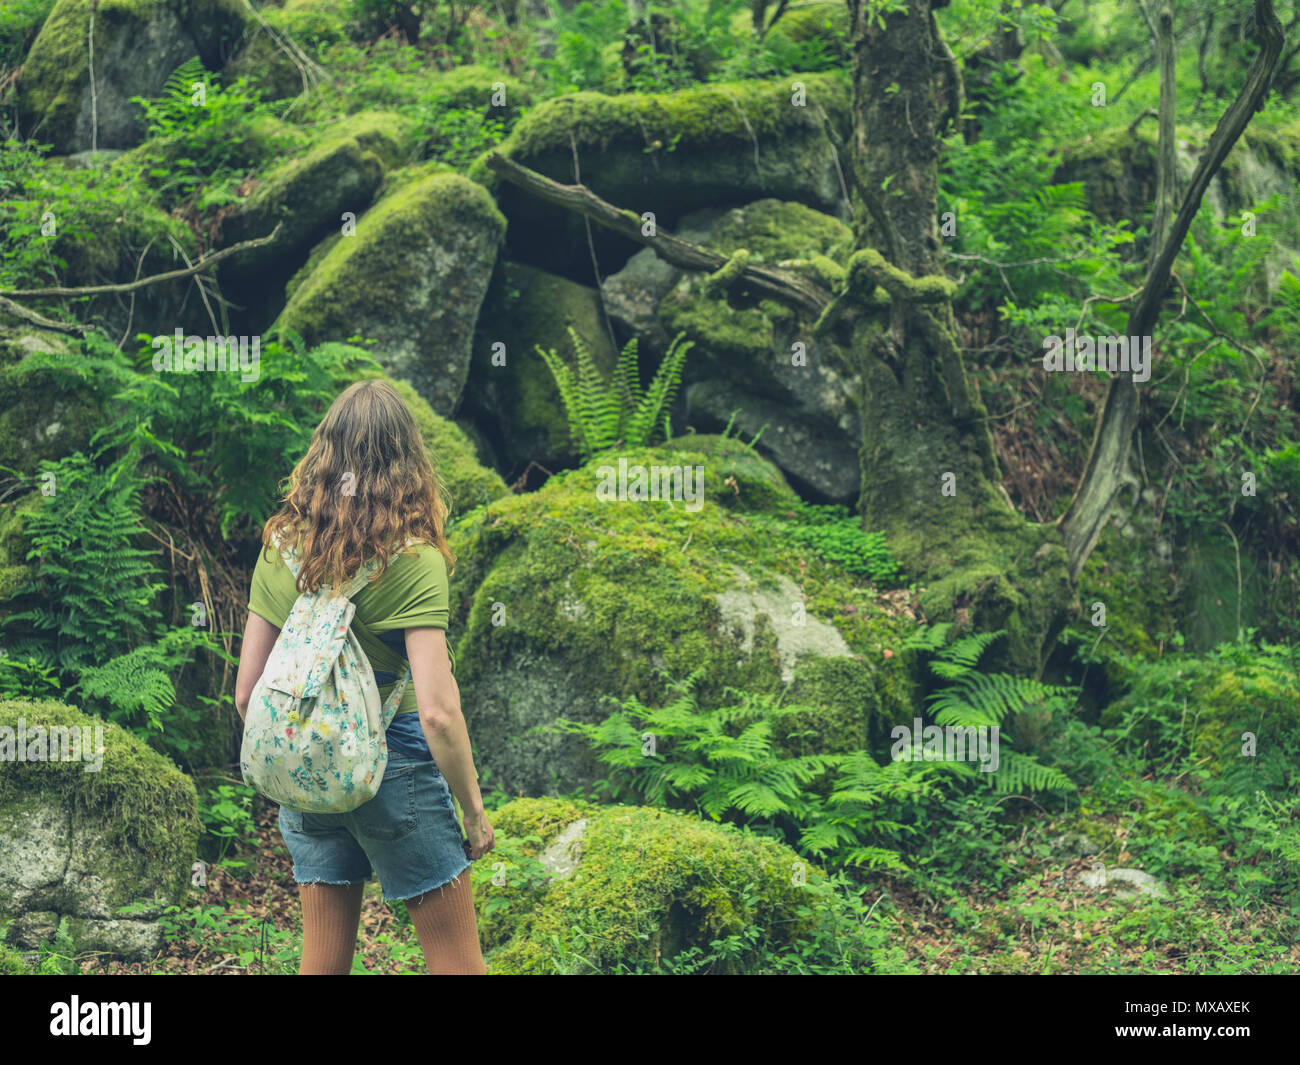 A young woman is walking in the forest - Stock Image